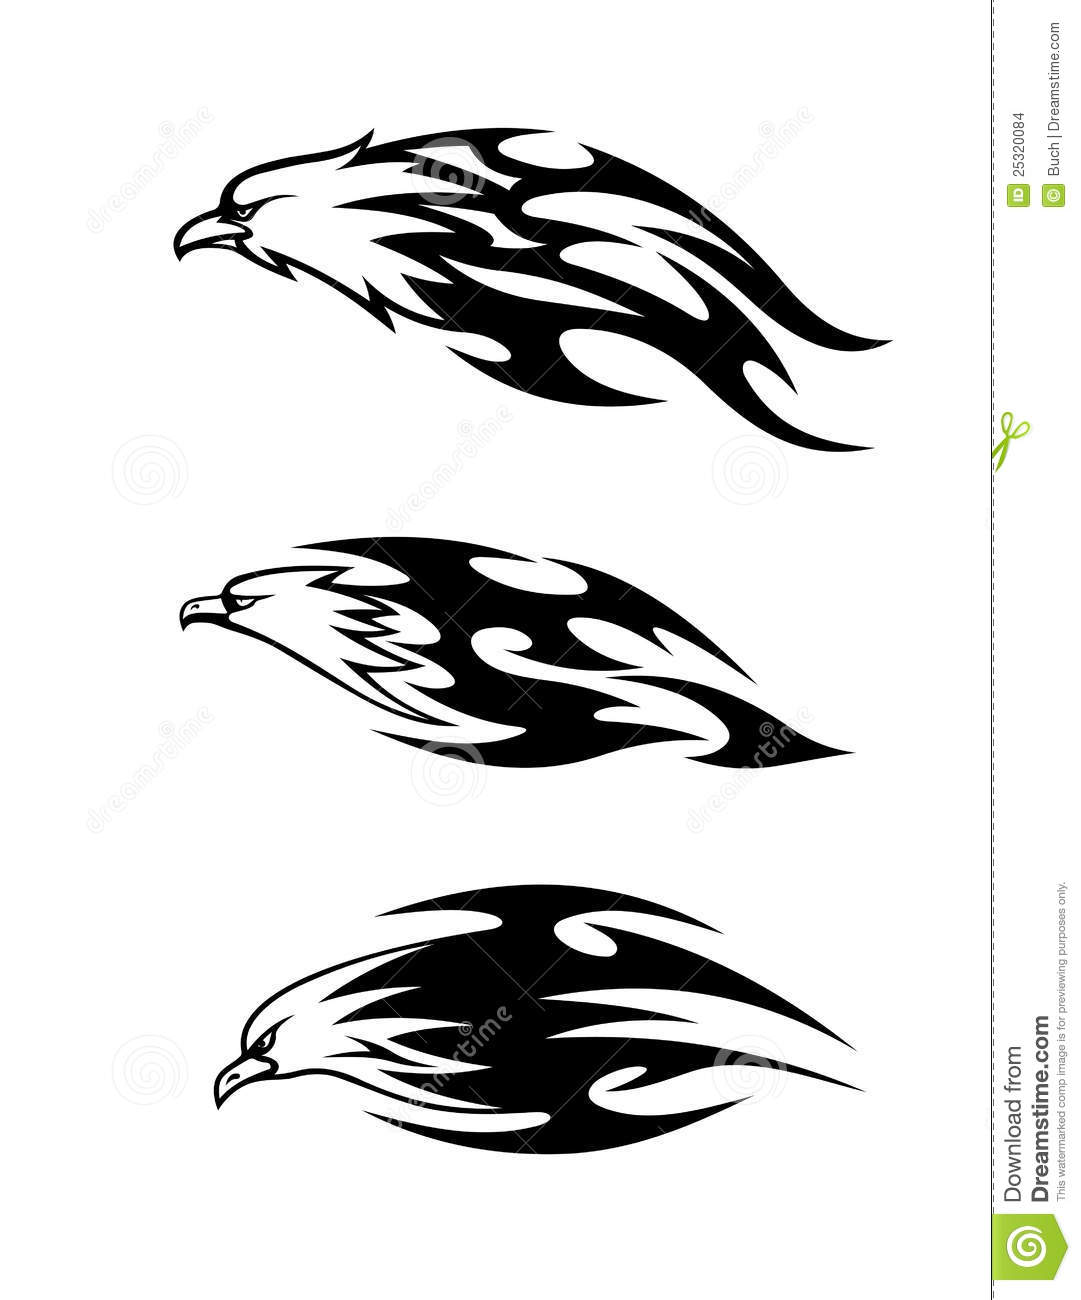 Eagle Tattoos With Flames Stock Images - Image: 25320084